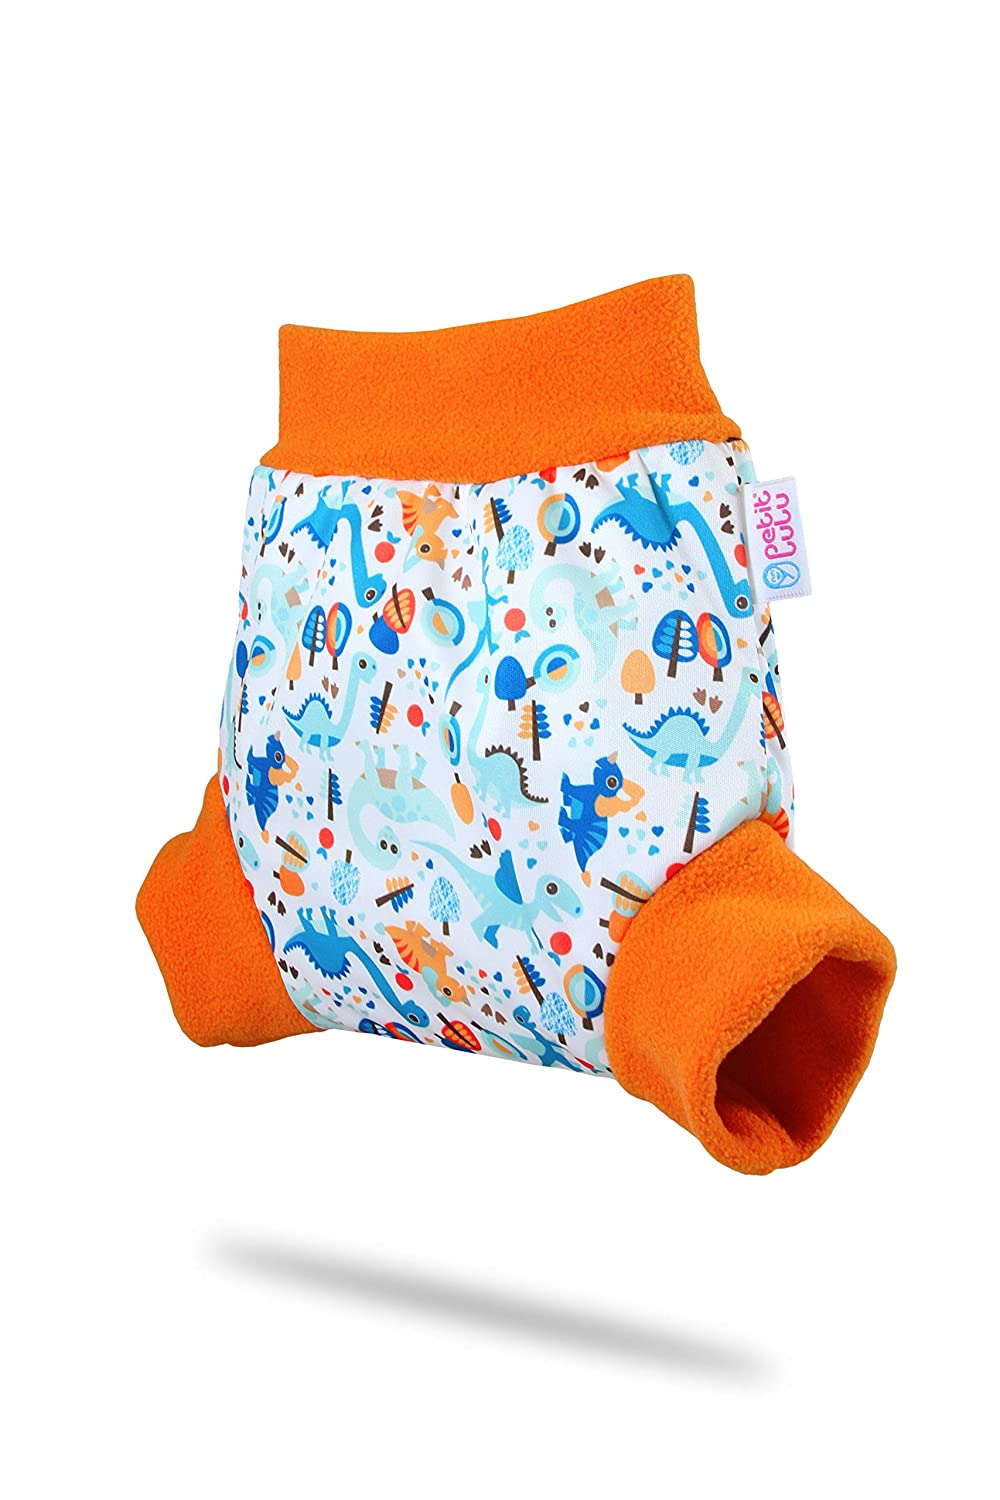 on White , Size S Made in Europe Washable Diaper Wrap Sizes XS//S//M//L//XL Cloth Nappies Petit Lulu Pull-Up Cloth Nappy Cover Mexican Skulls